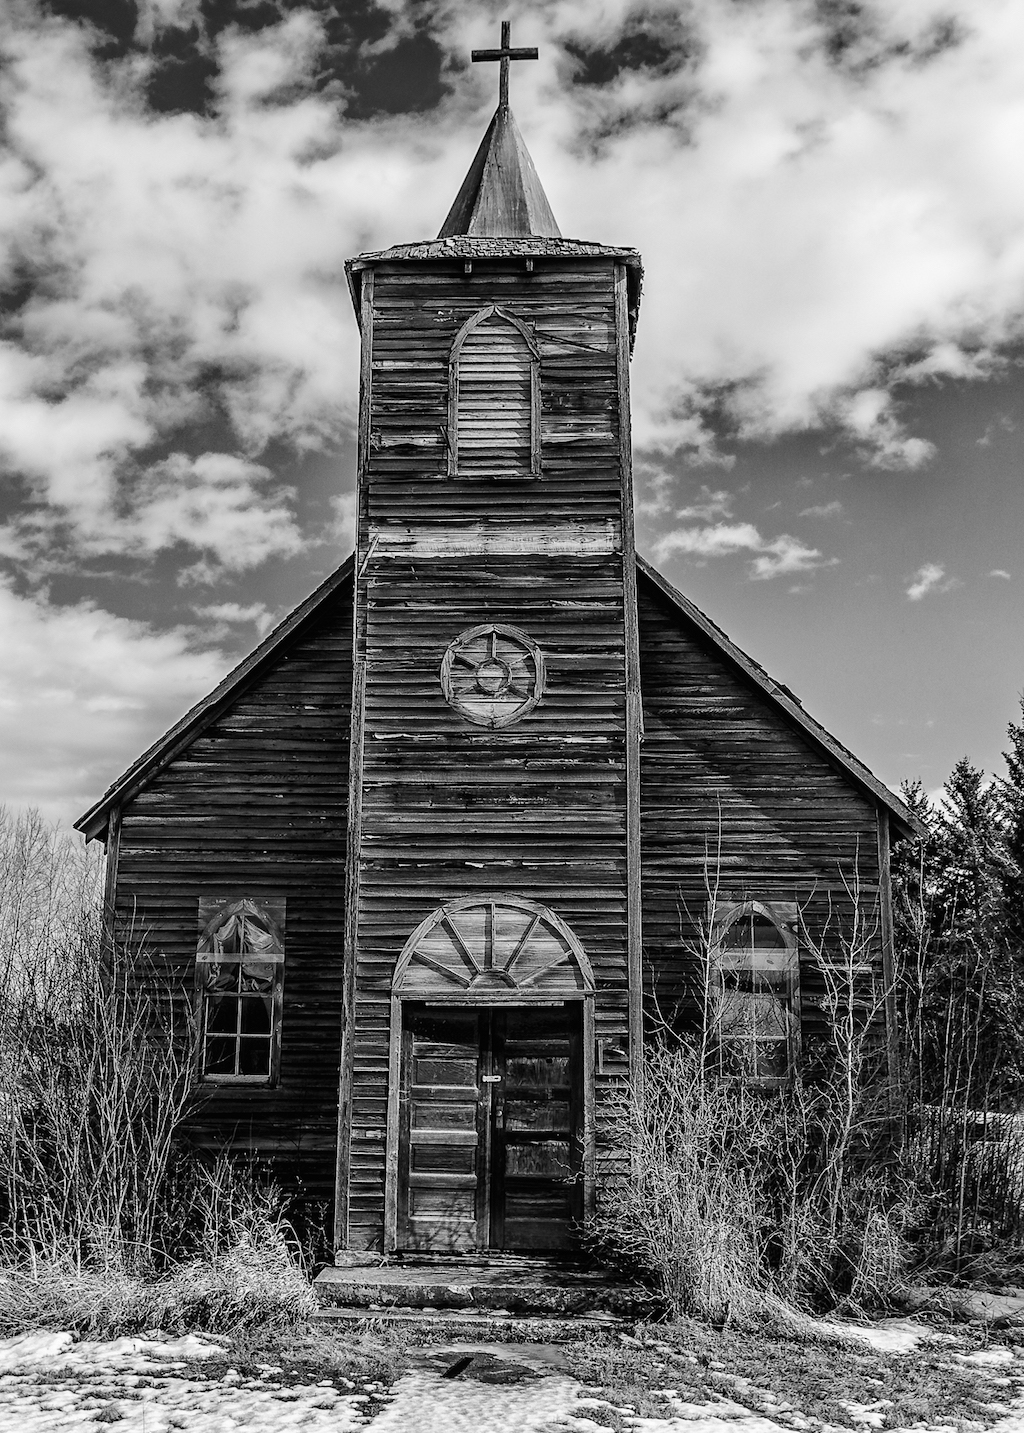 Wooden Steeple Church